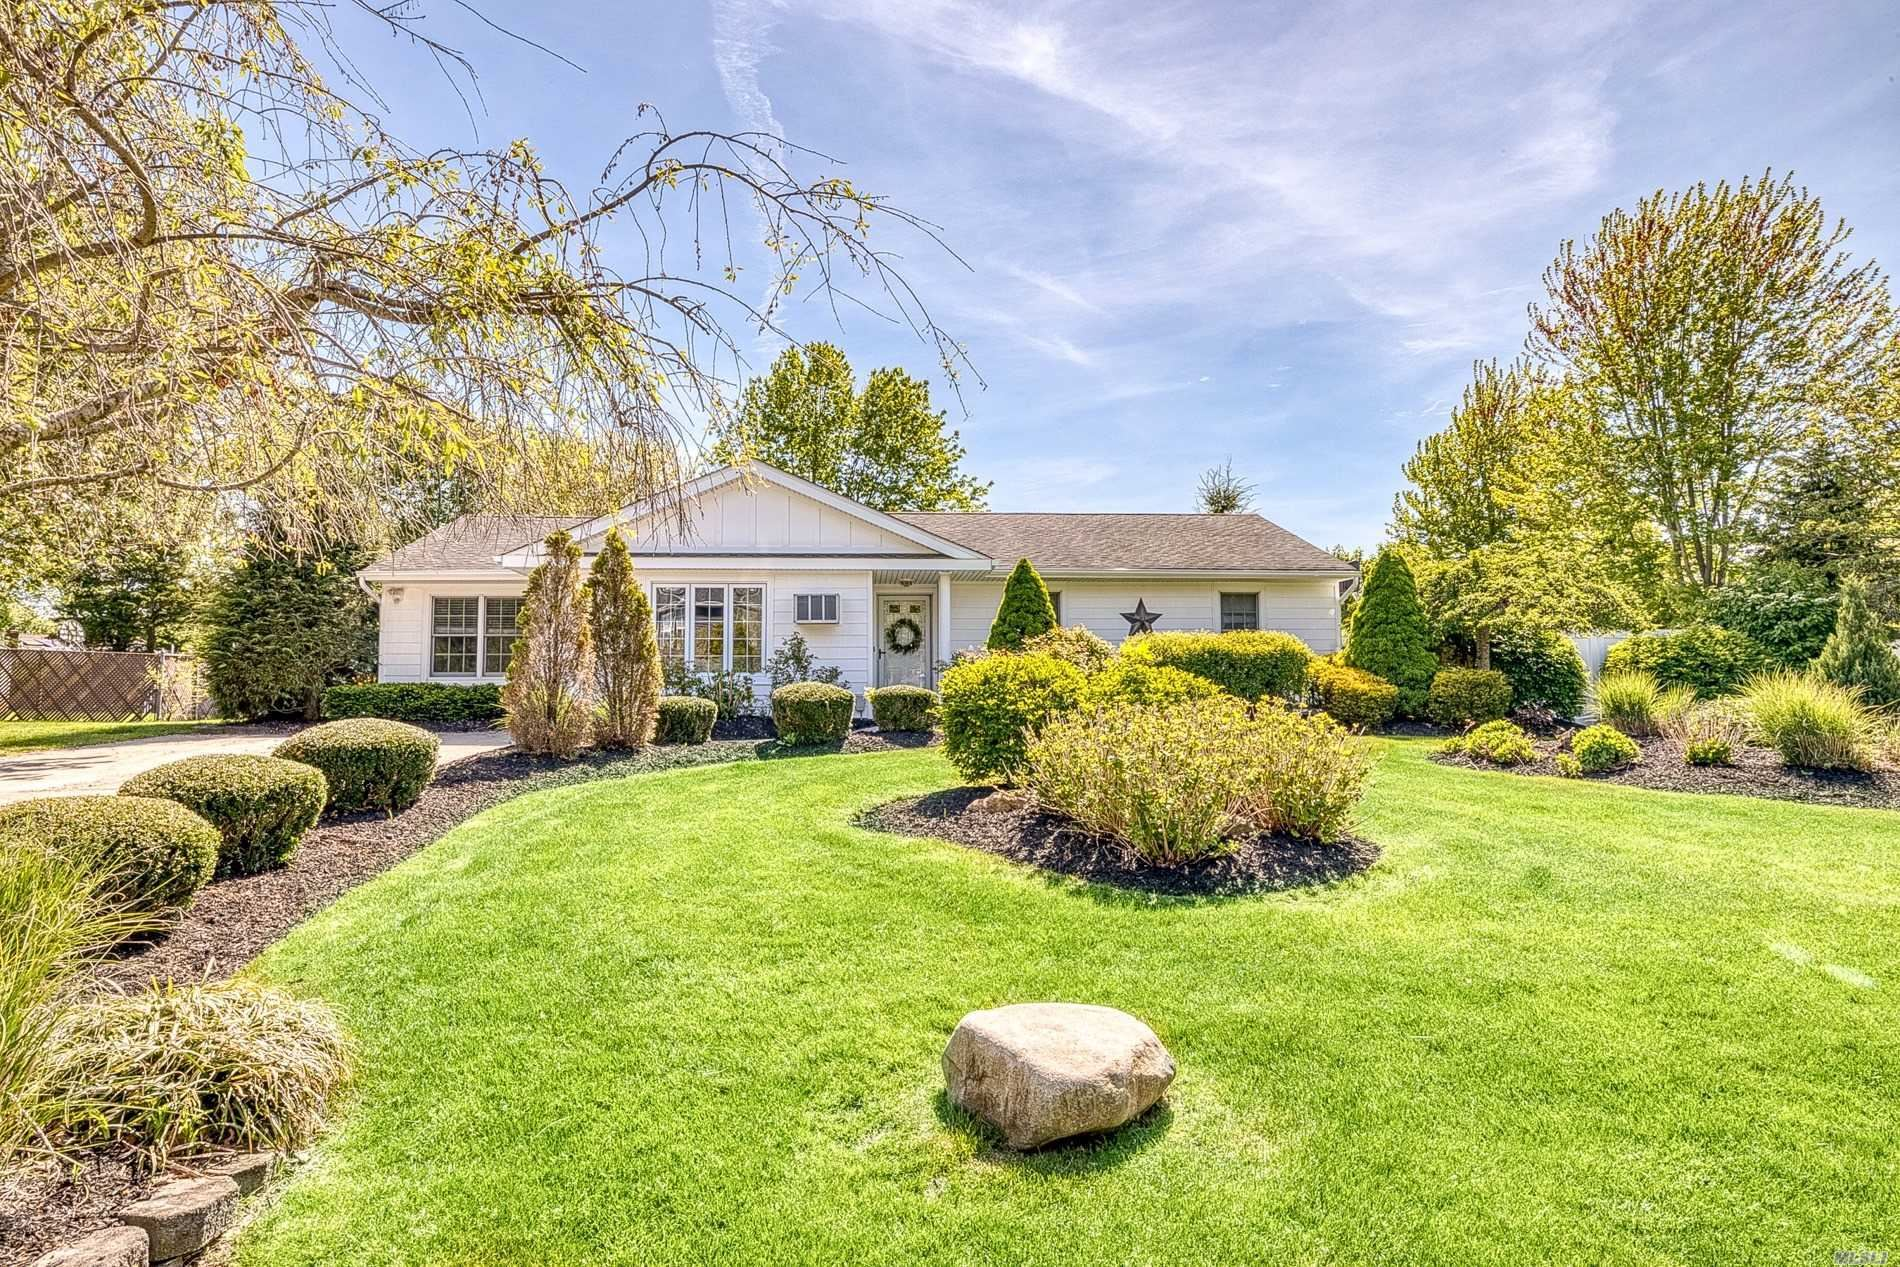 14 Bristol Downs St, Coram, NY 11727 - MLS#: 3216332